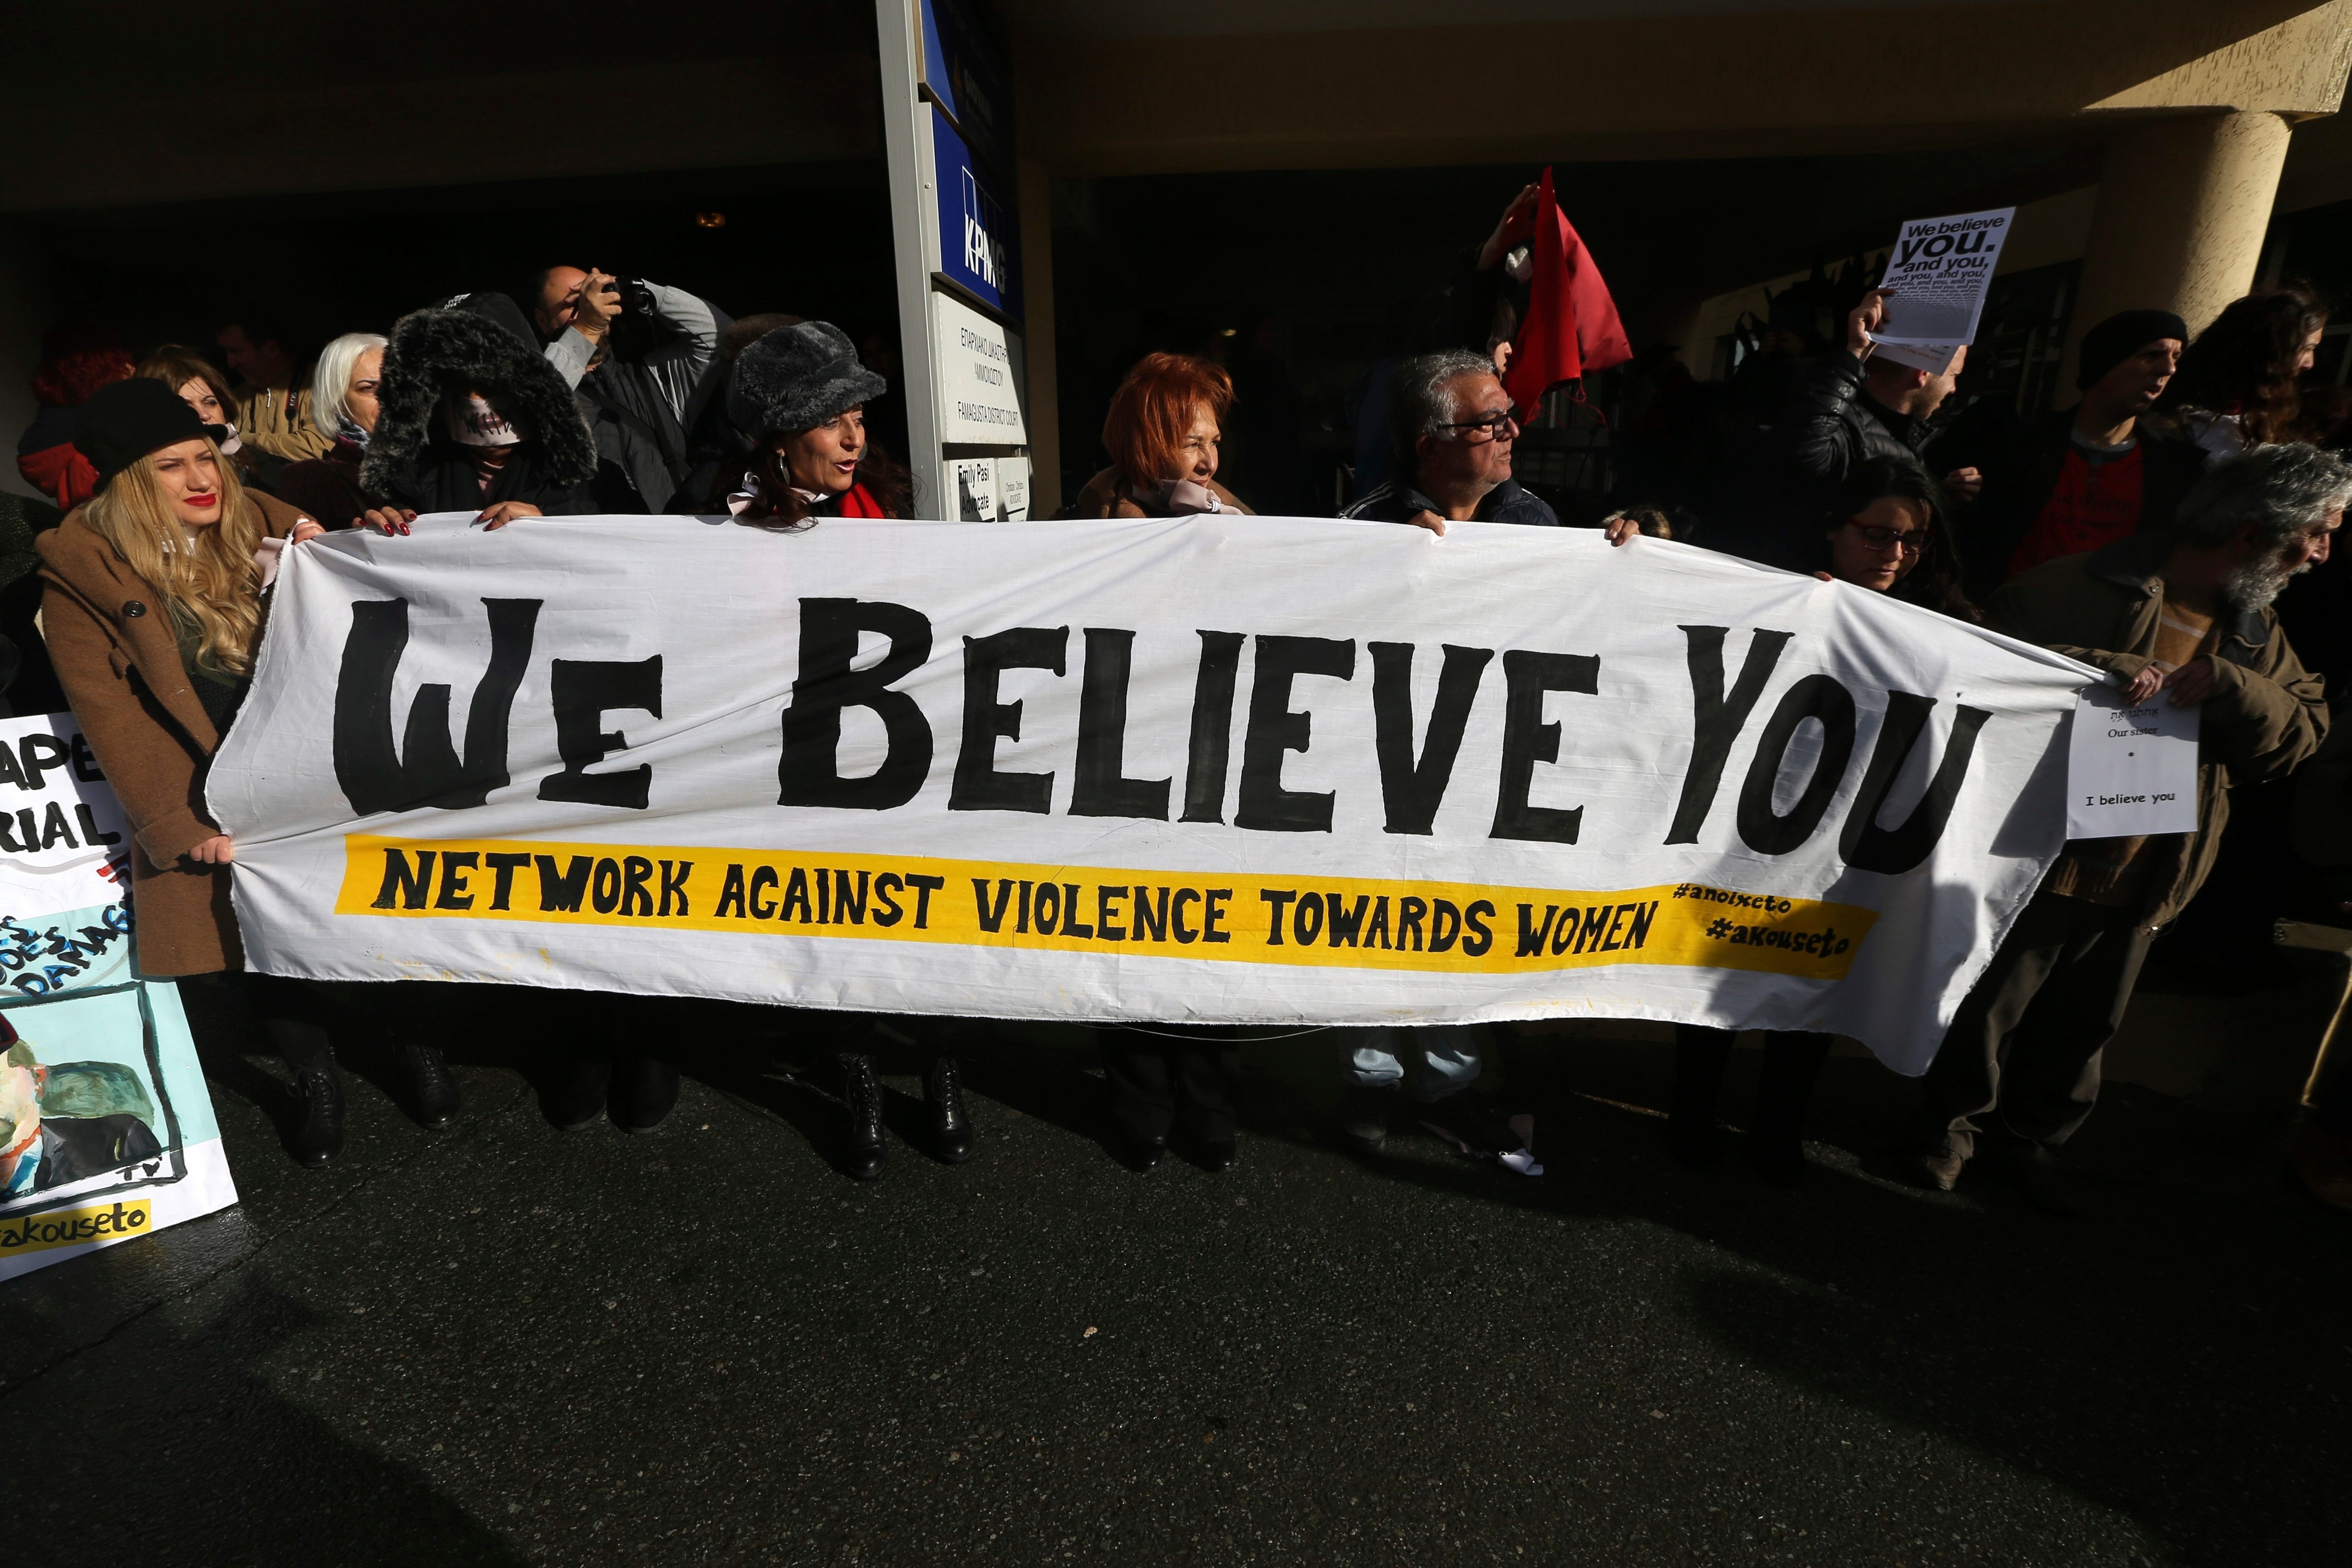 Supporters held signs saying 'We Believe You' and chanted 'You are not alone'